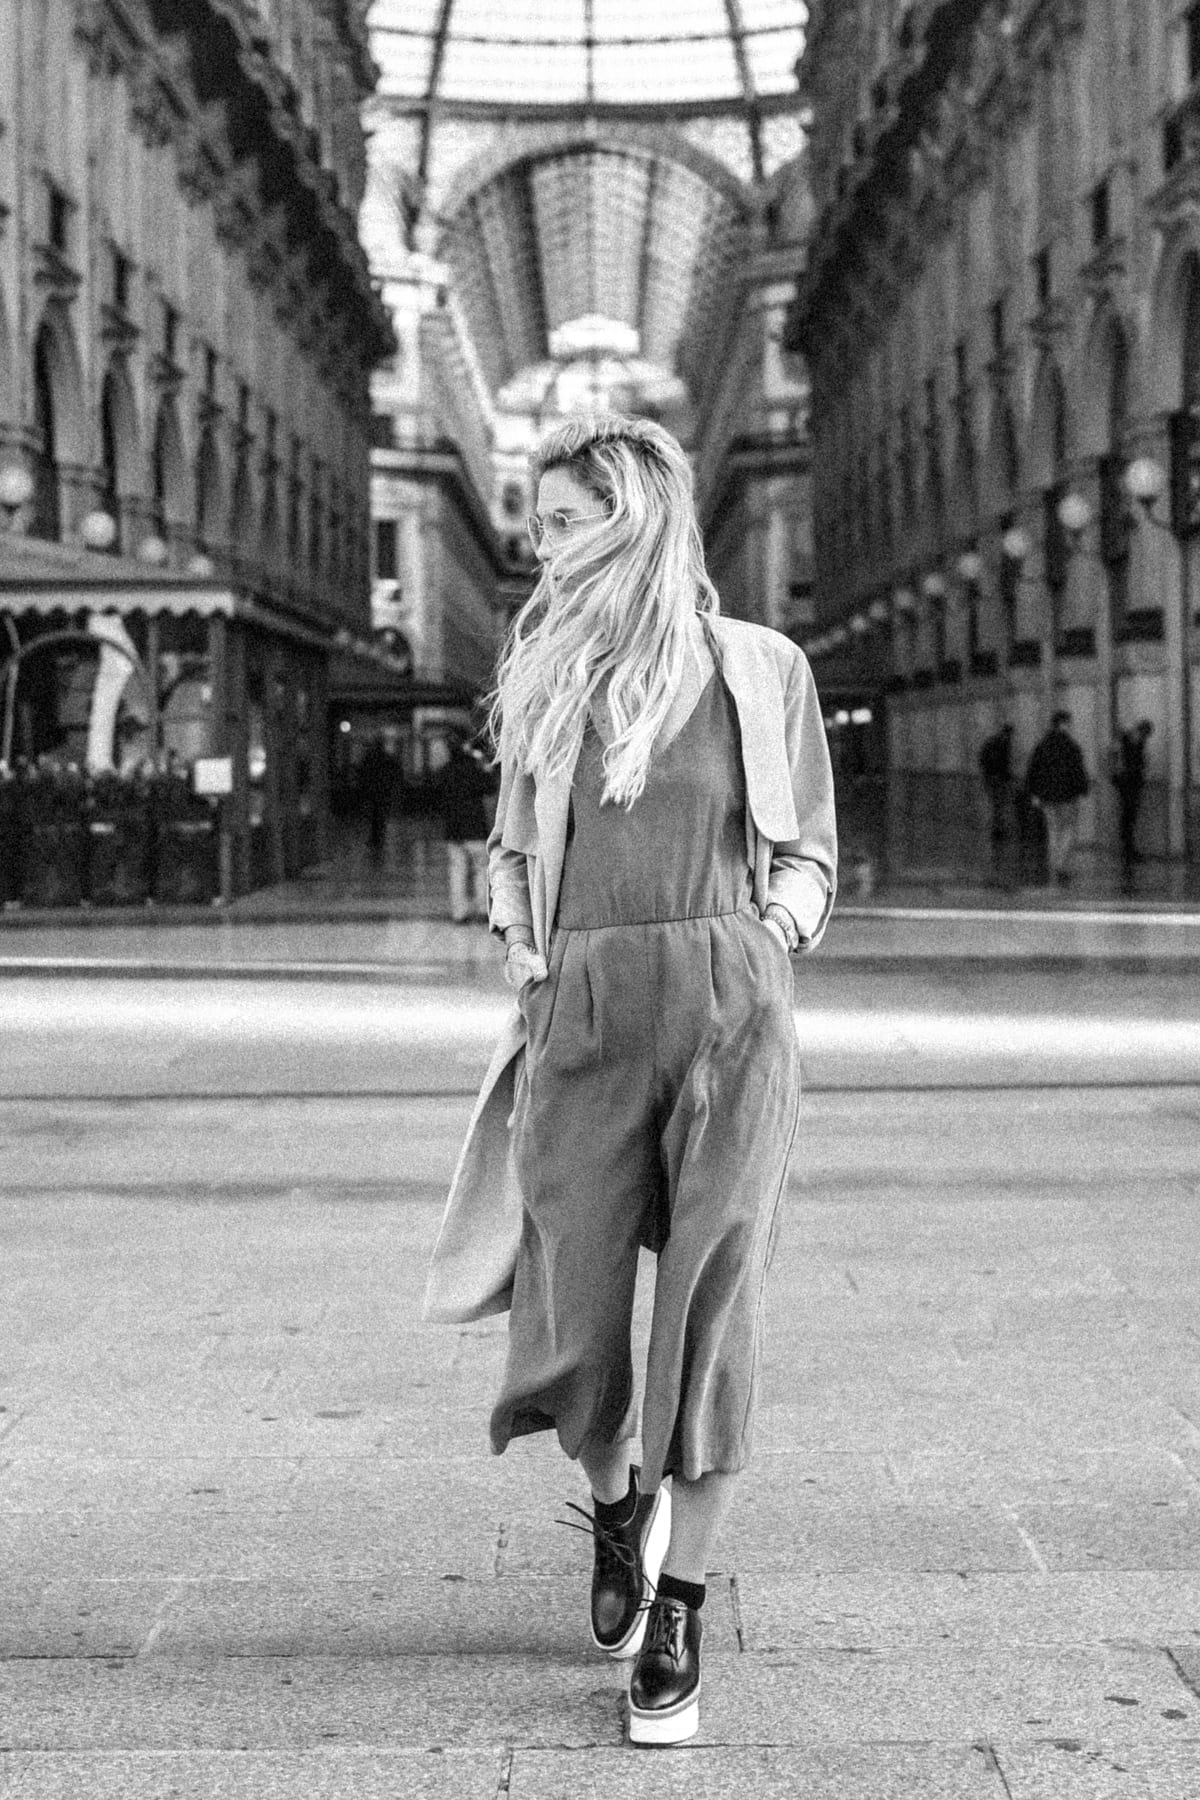 CK_1604_Constantly-K-milano-street-style-fashion-eataly-3951